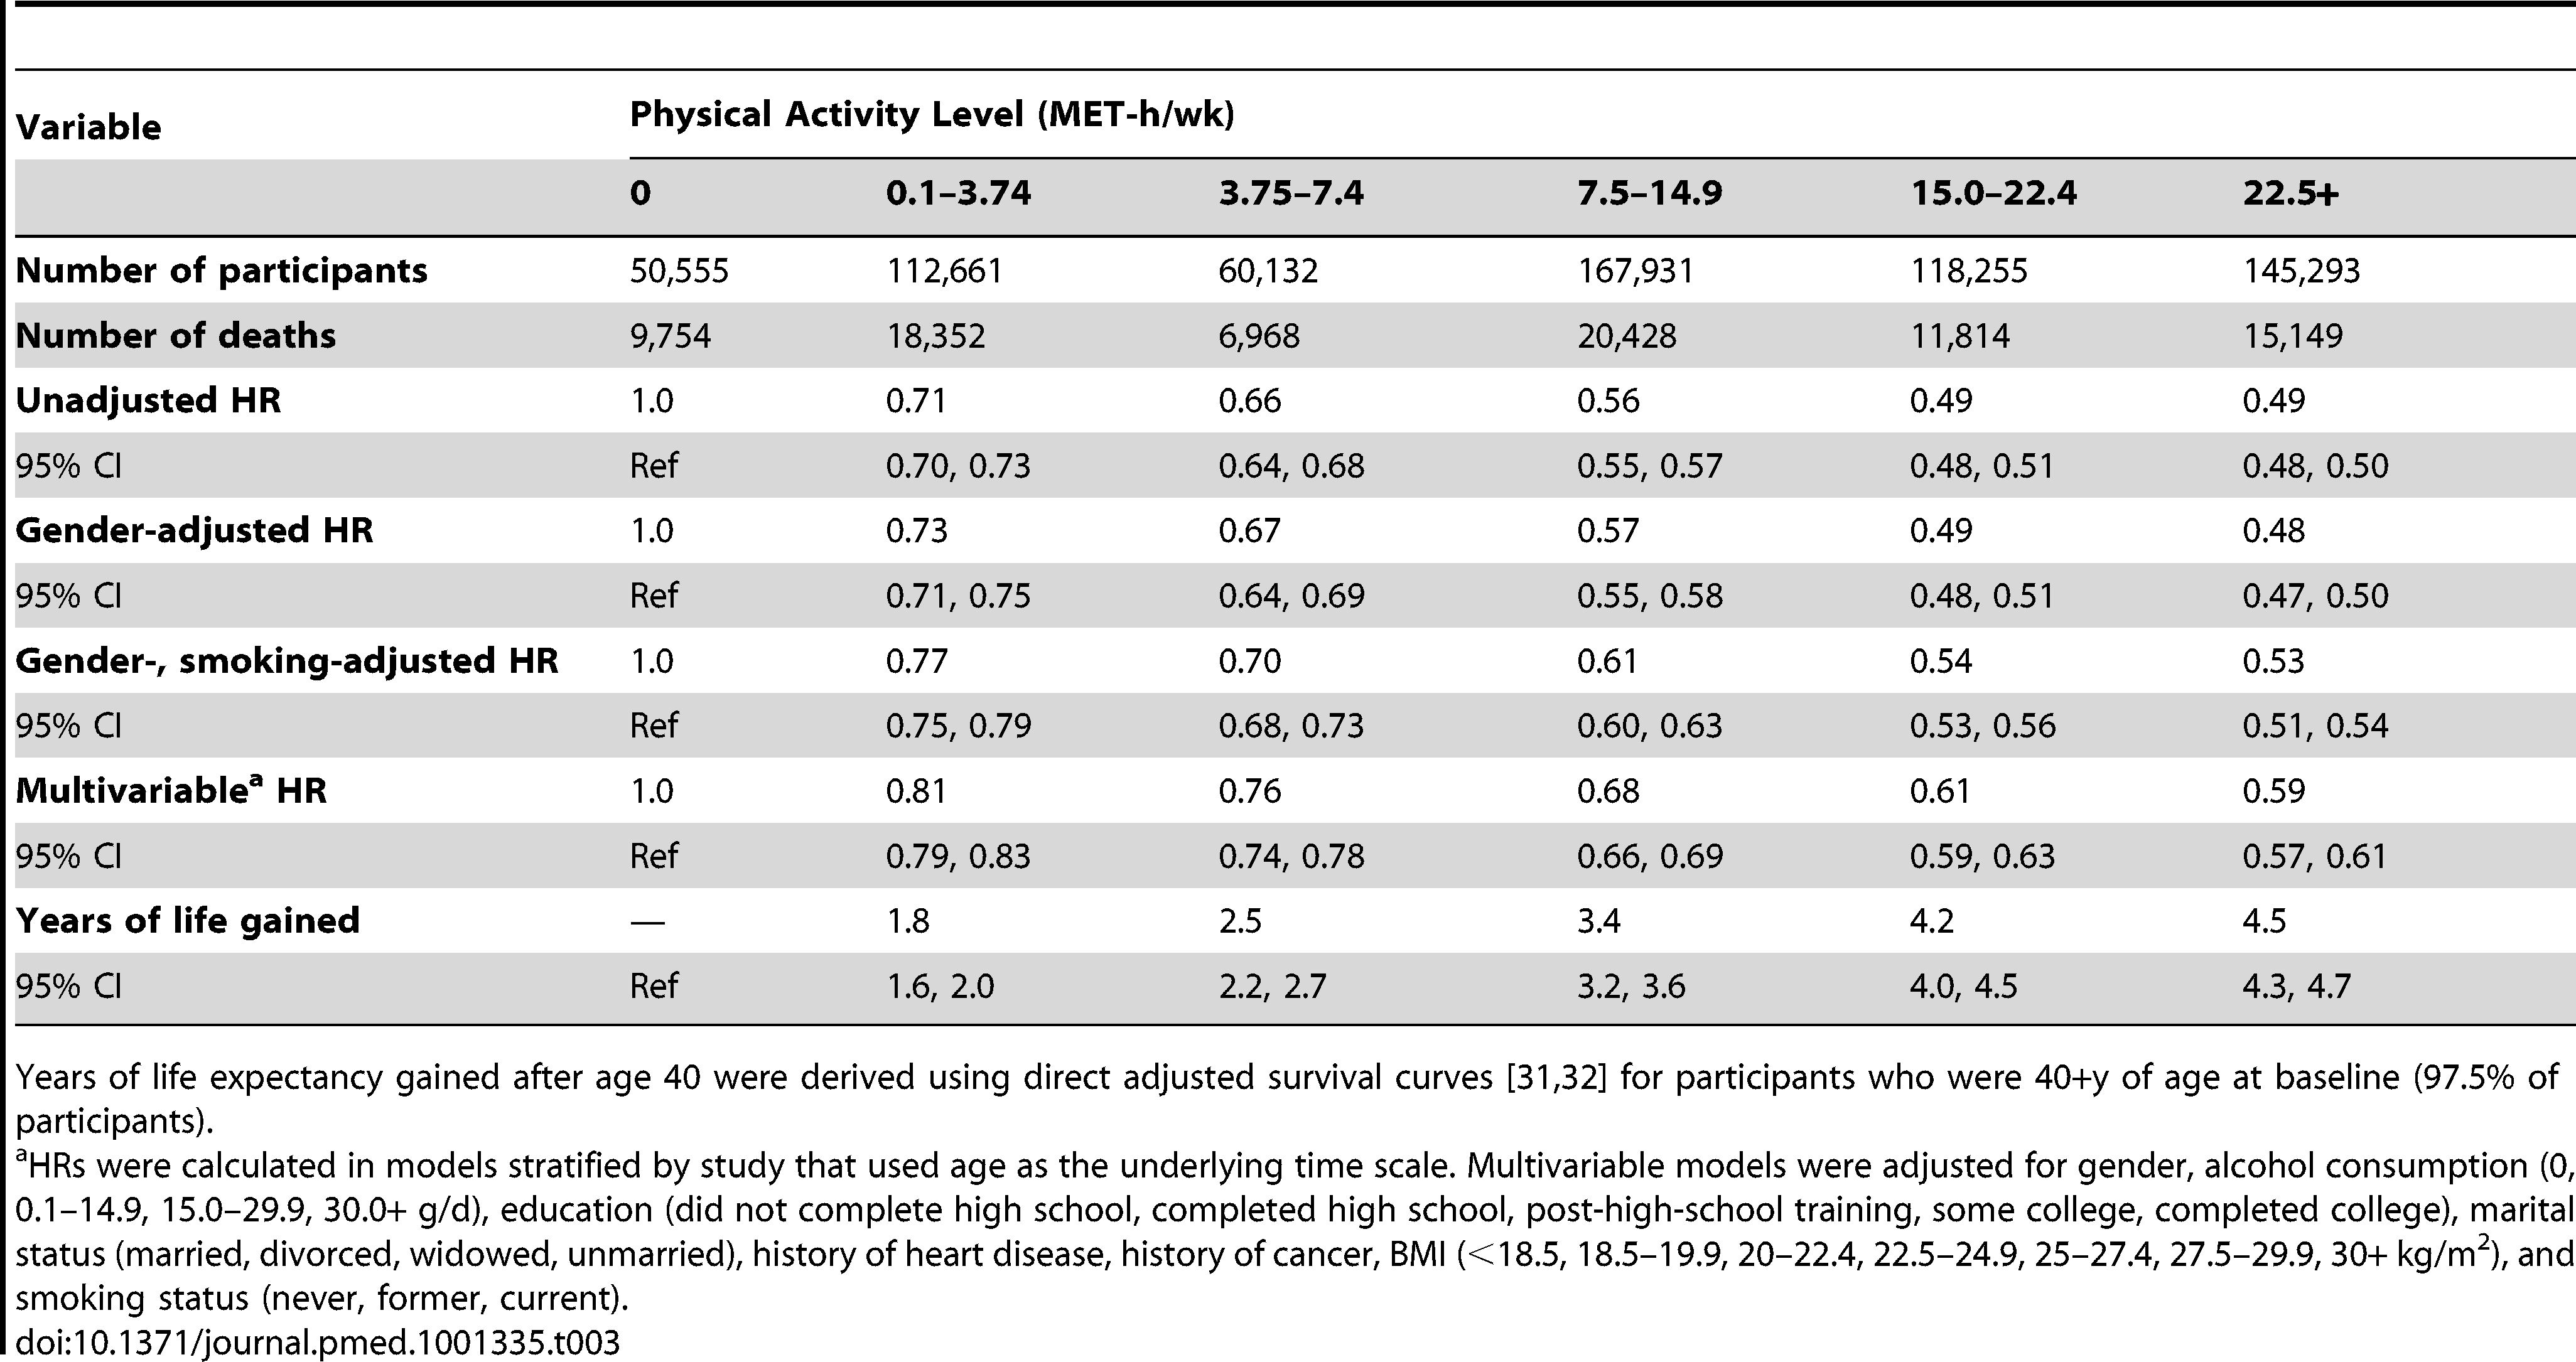 Leisure time physical activity and hazard ratio of mortality and years of life gained after age 40.